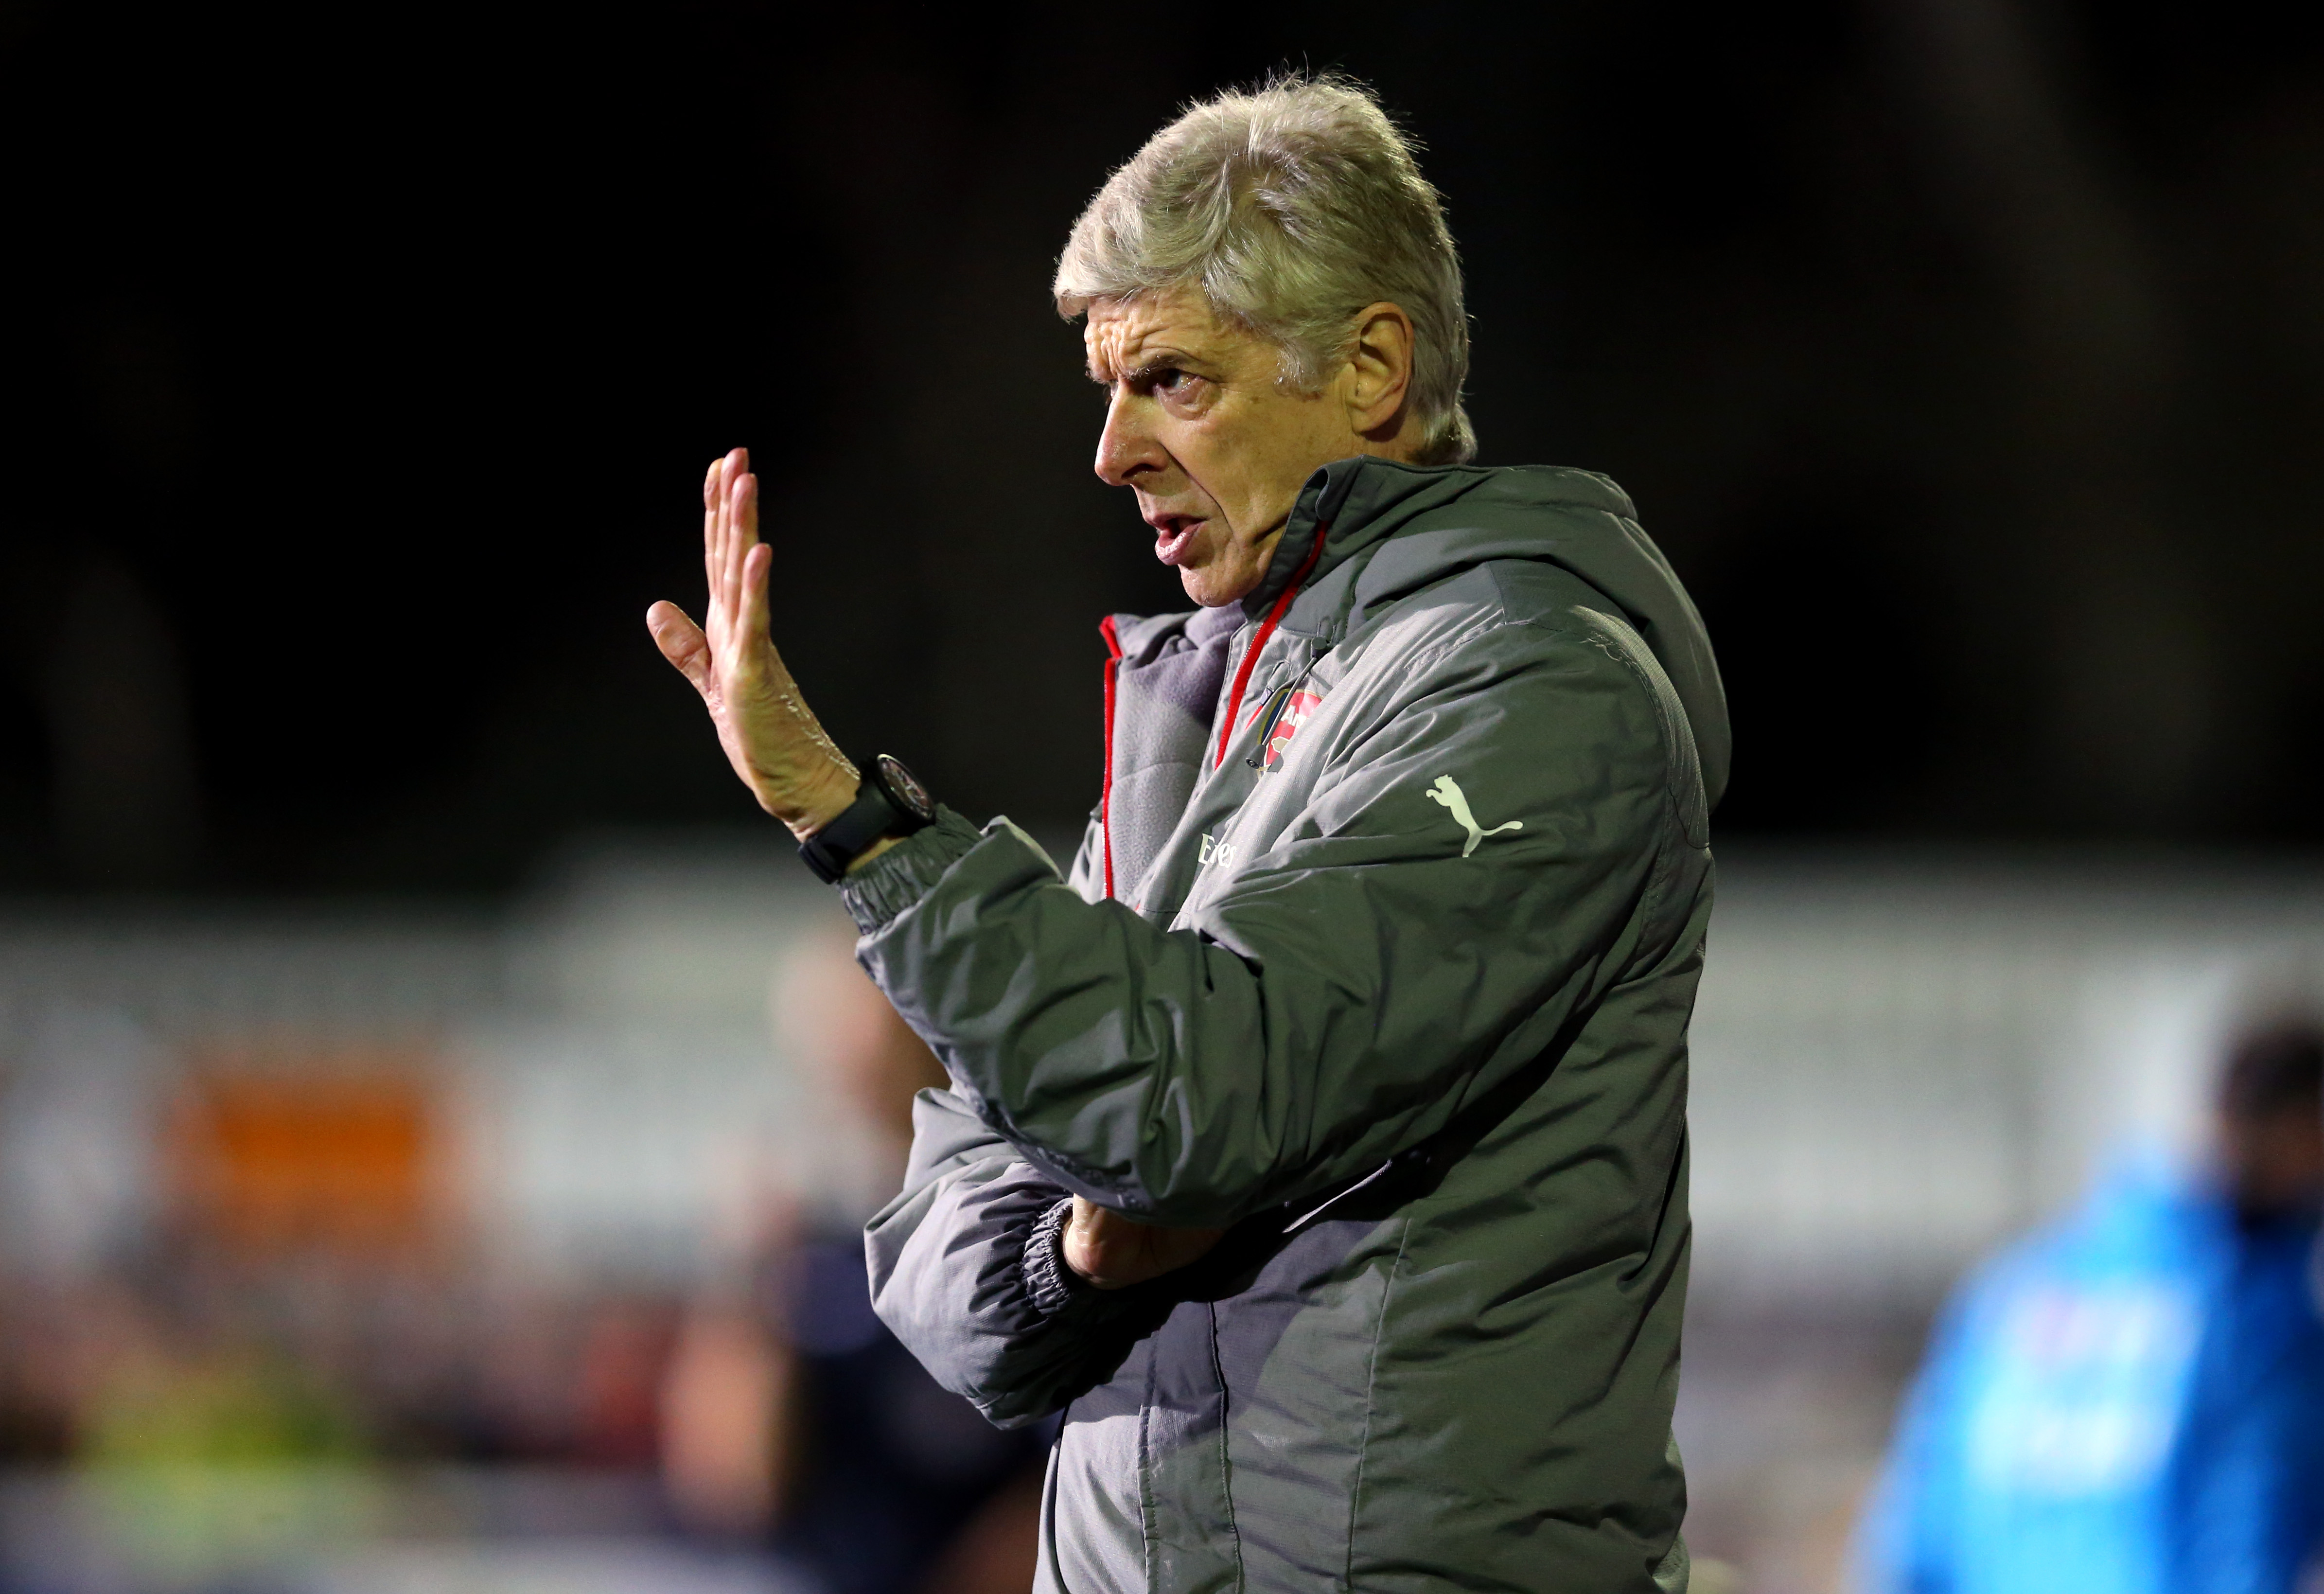 SUTTON, GREATER LONDON - FEBRUARY 20: Arsene Wenger manager of Arsenal during The Emirates FA Cup Fifth Round match between Sutton United and Arsenal on February 20, 2017 in Sutton, Greater London. (Photo by Catherine Ivill - AMA/Getty Images)